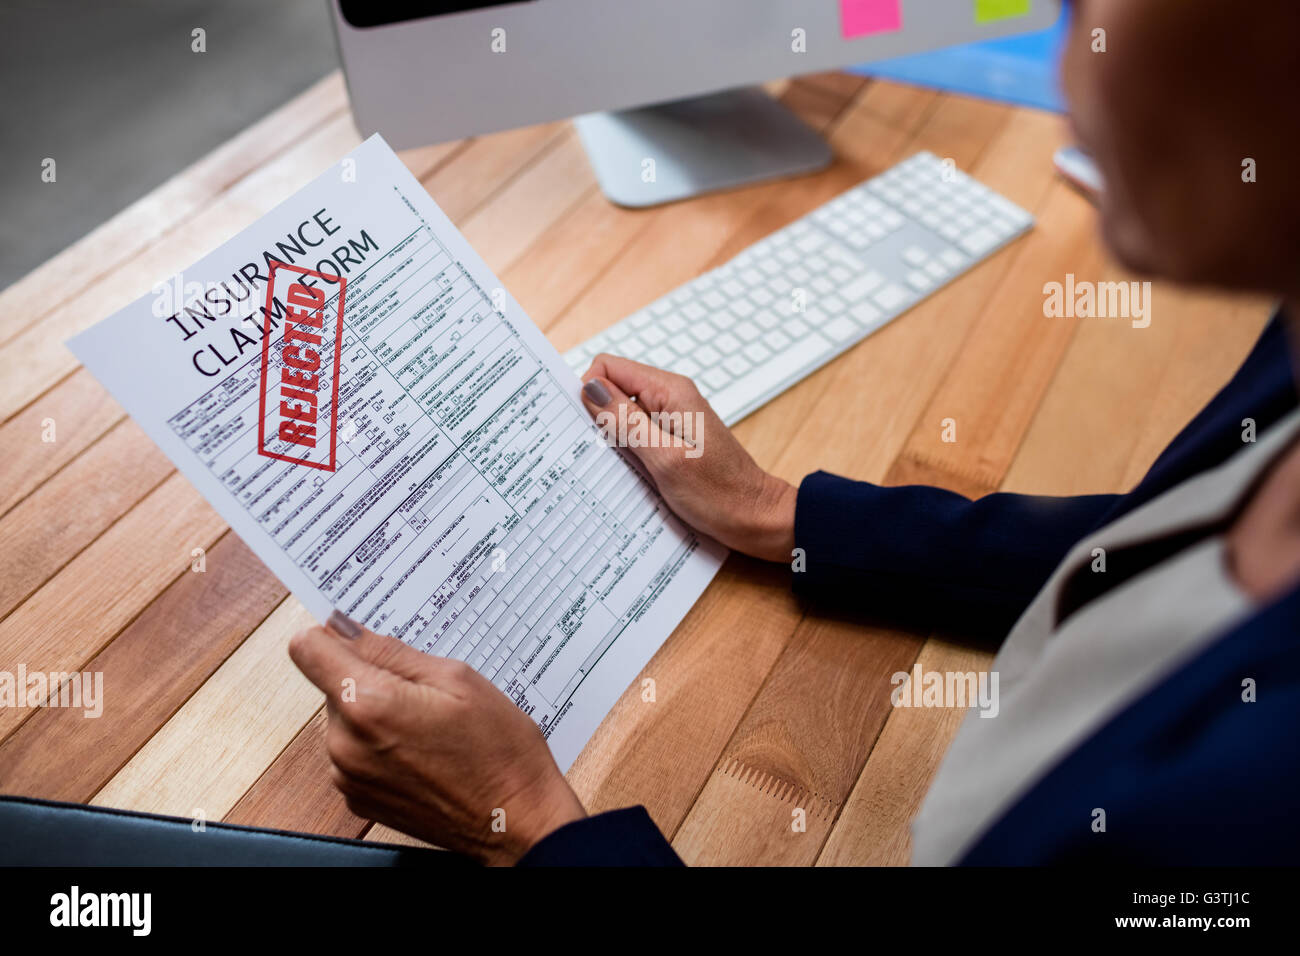 People reading an insurance claim form - Stock Image